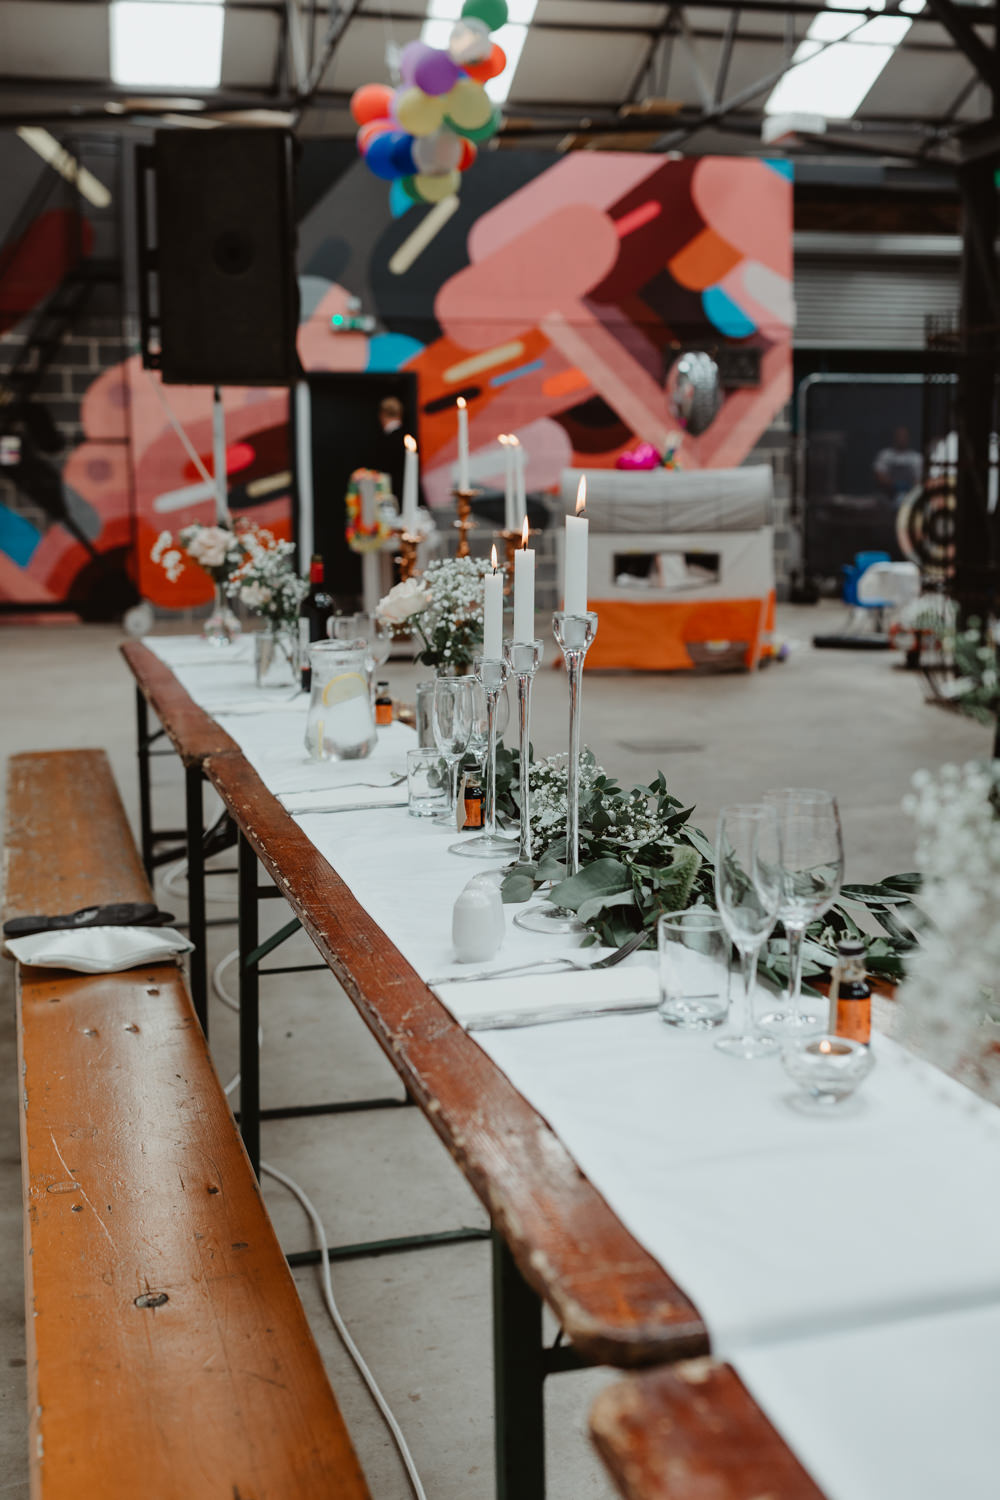 Reception Venue Industrial Warehouse Benches Long Tables Flowers Decor Decoration Runners Festoon Lights Candles 92 Burton Road Wedding Stevie Jay Photography